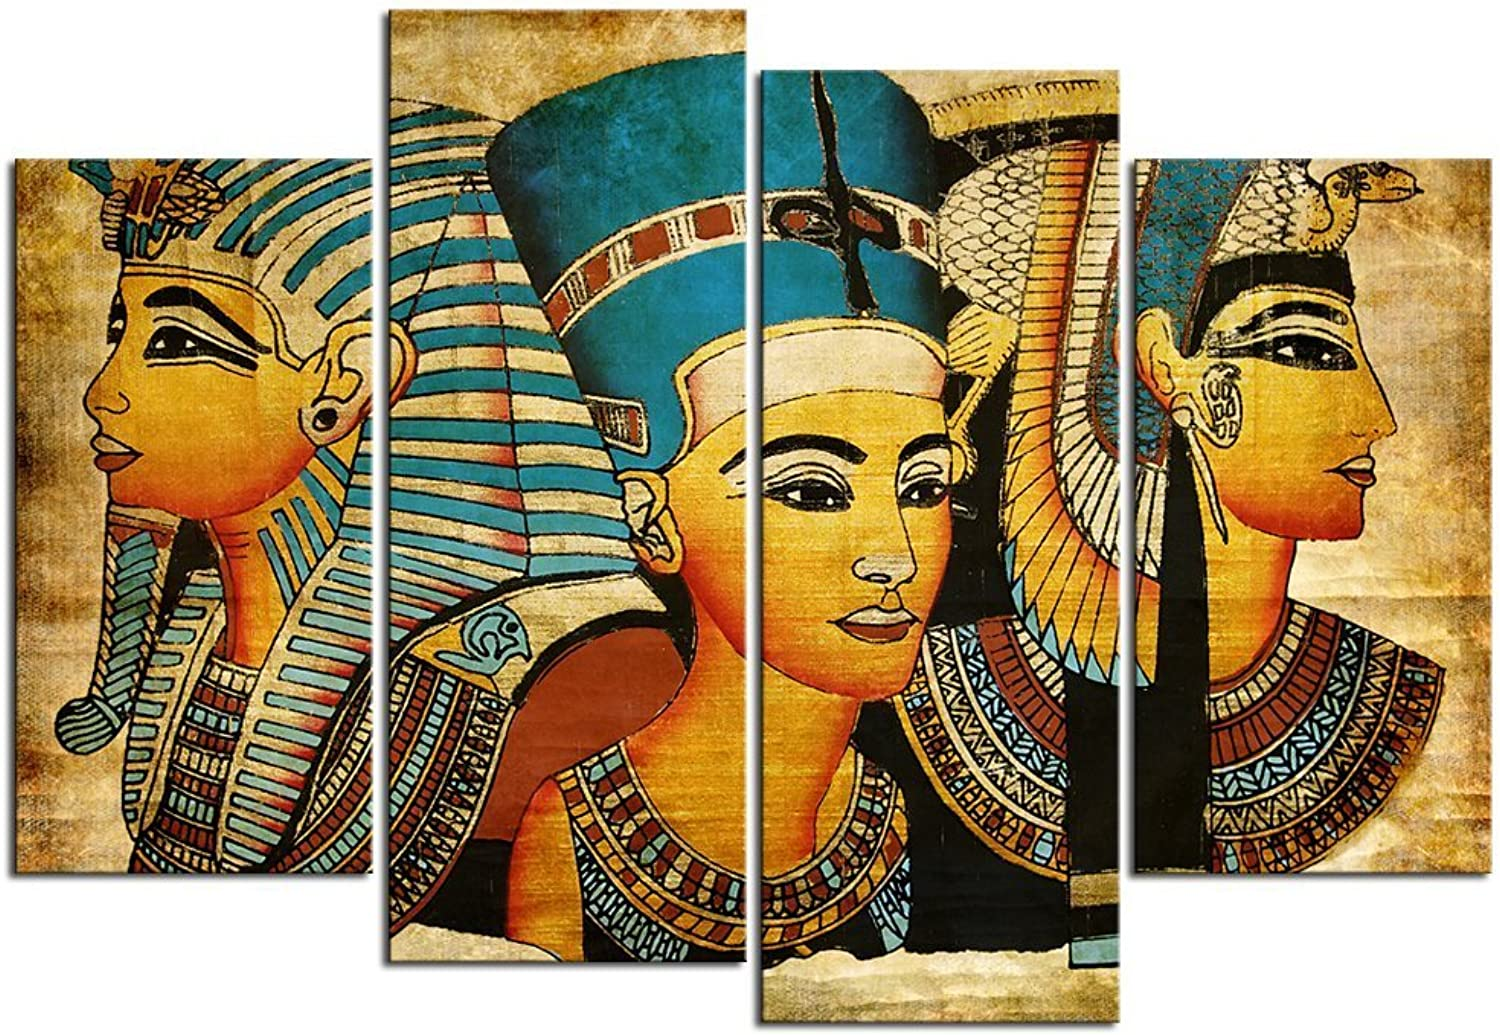 Sea Charm Egyptian Decor Ancient 4 Pieces Canvas Wall Art Framed Egyptian Pictures for Living Room Decor,Vintage Canvas Painting Giclee Print Artwork